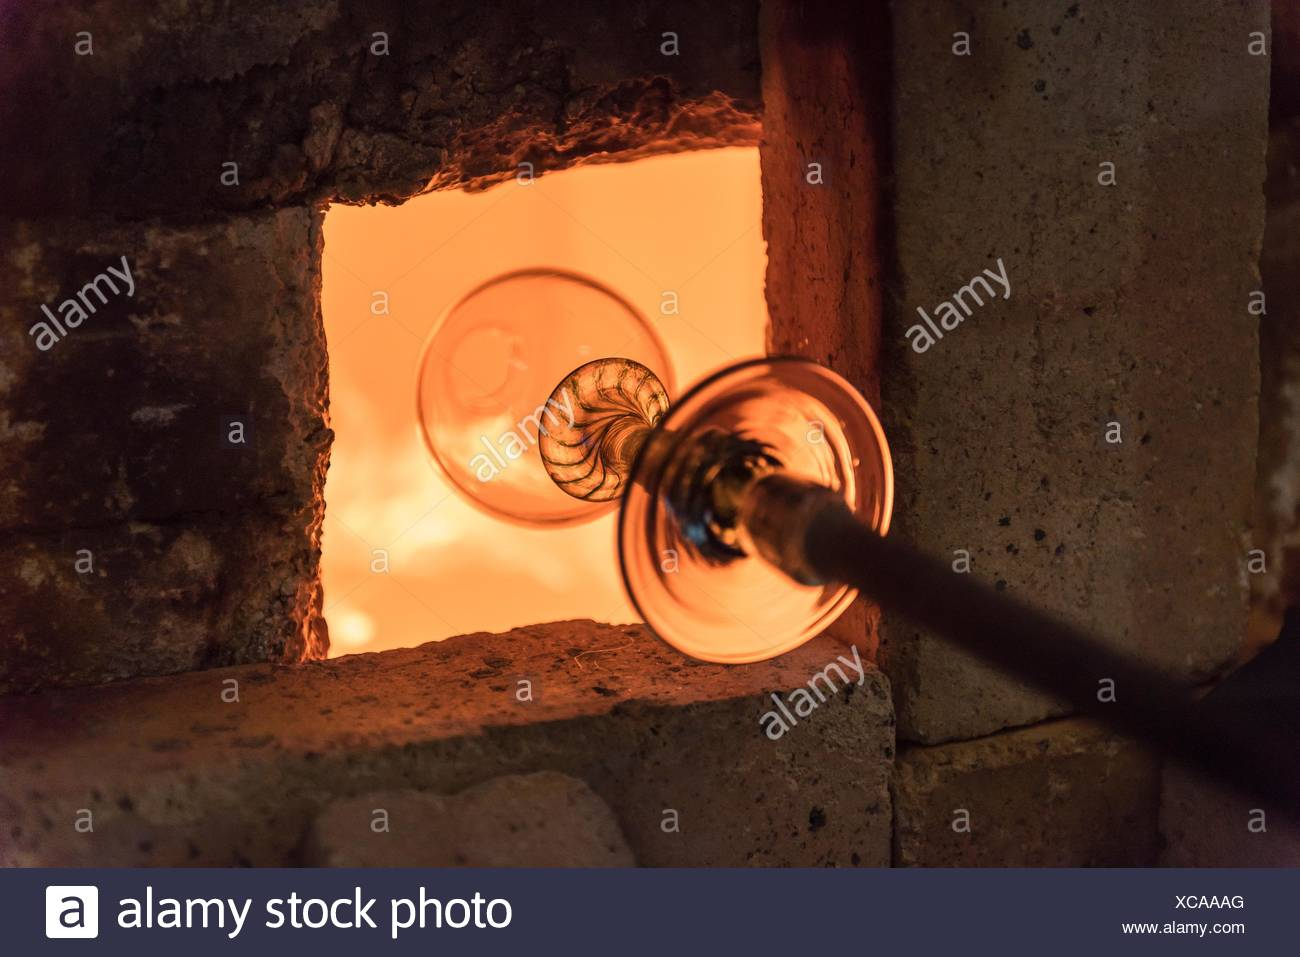 Glassblower heating glass in furnace - Stock Image